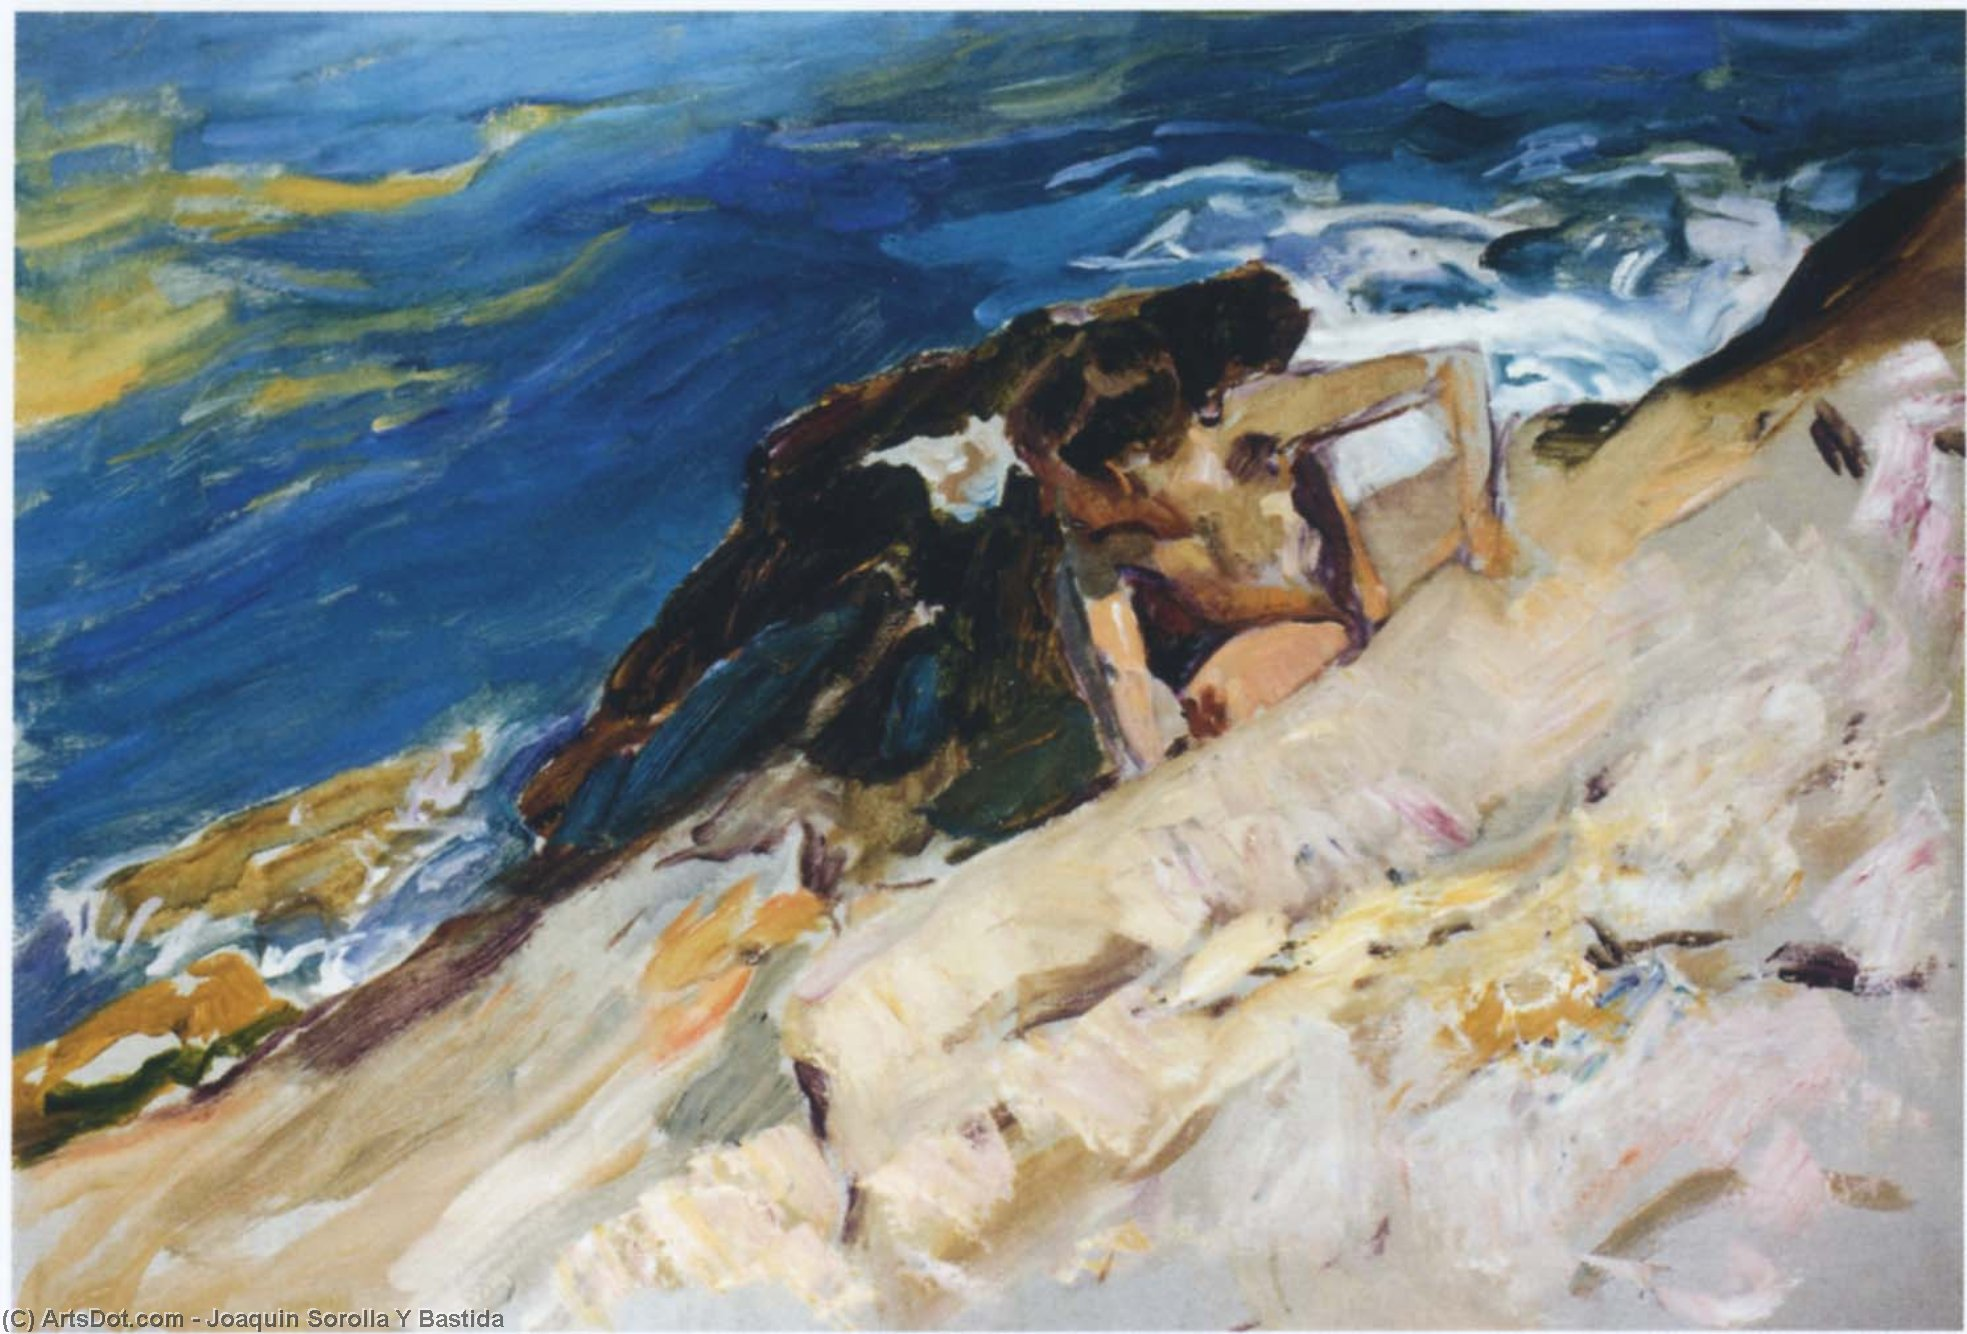 Looking for Crabs among the Rocks, Javea, Oil On Canvas by Joaquin Sorolla Y Bastida (1863-1923, Spain)